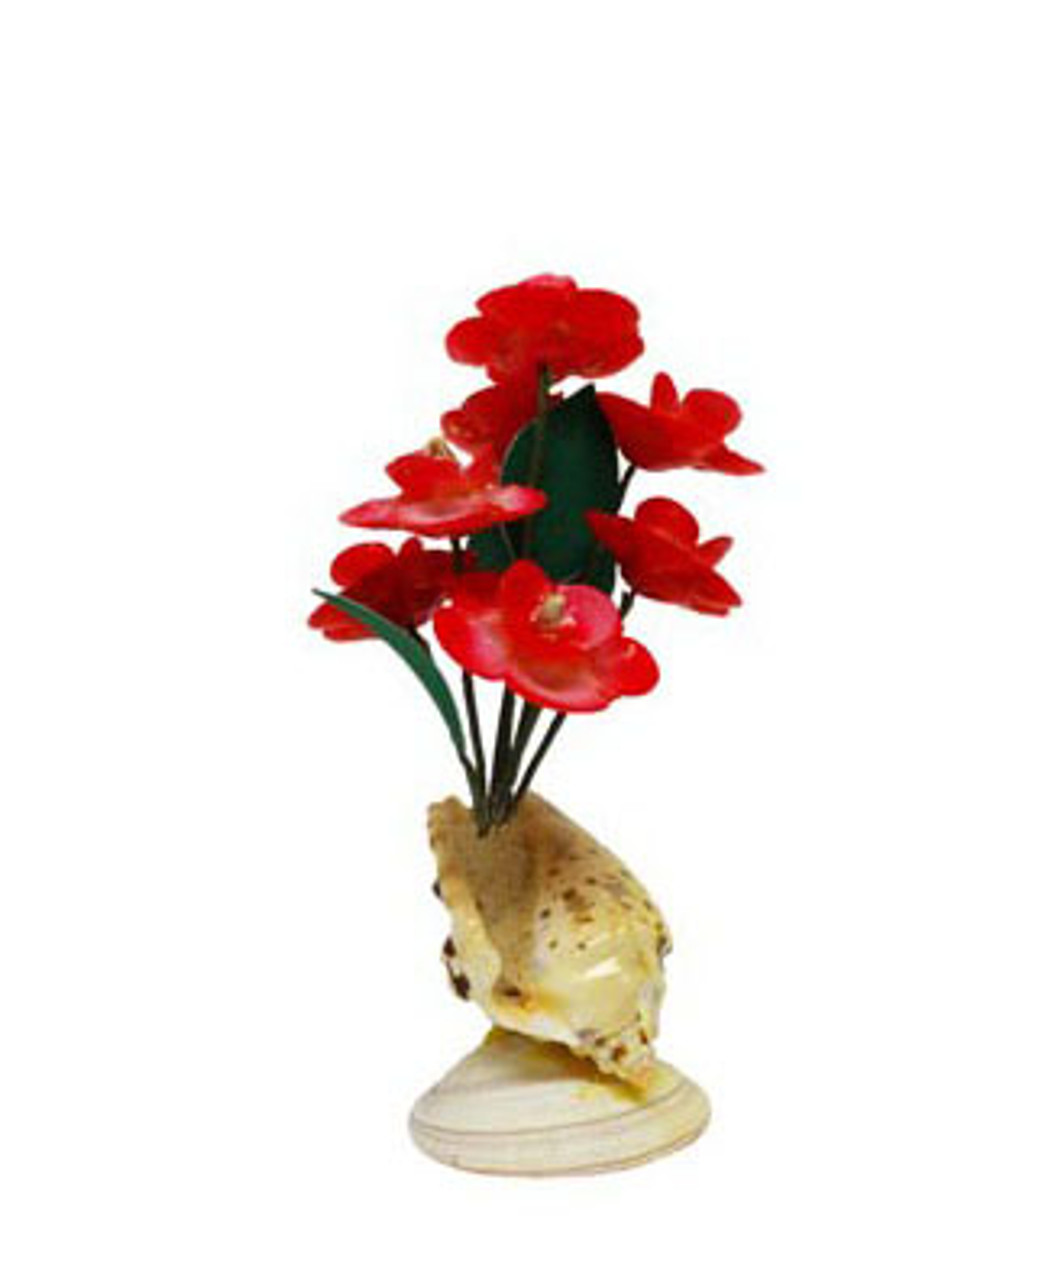 Red Flower Arrangement With Seashells